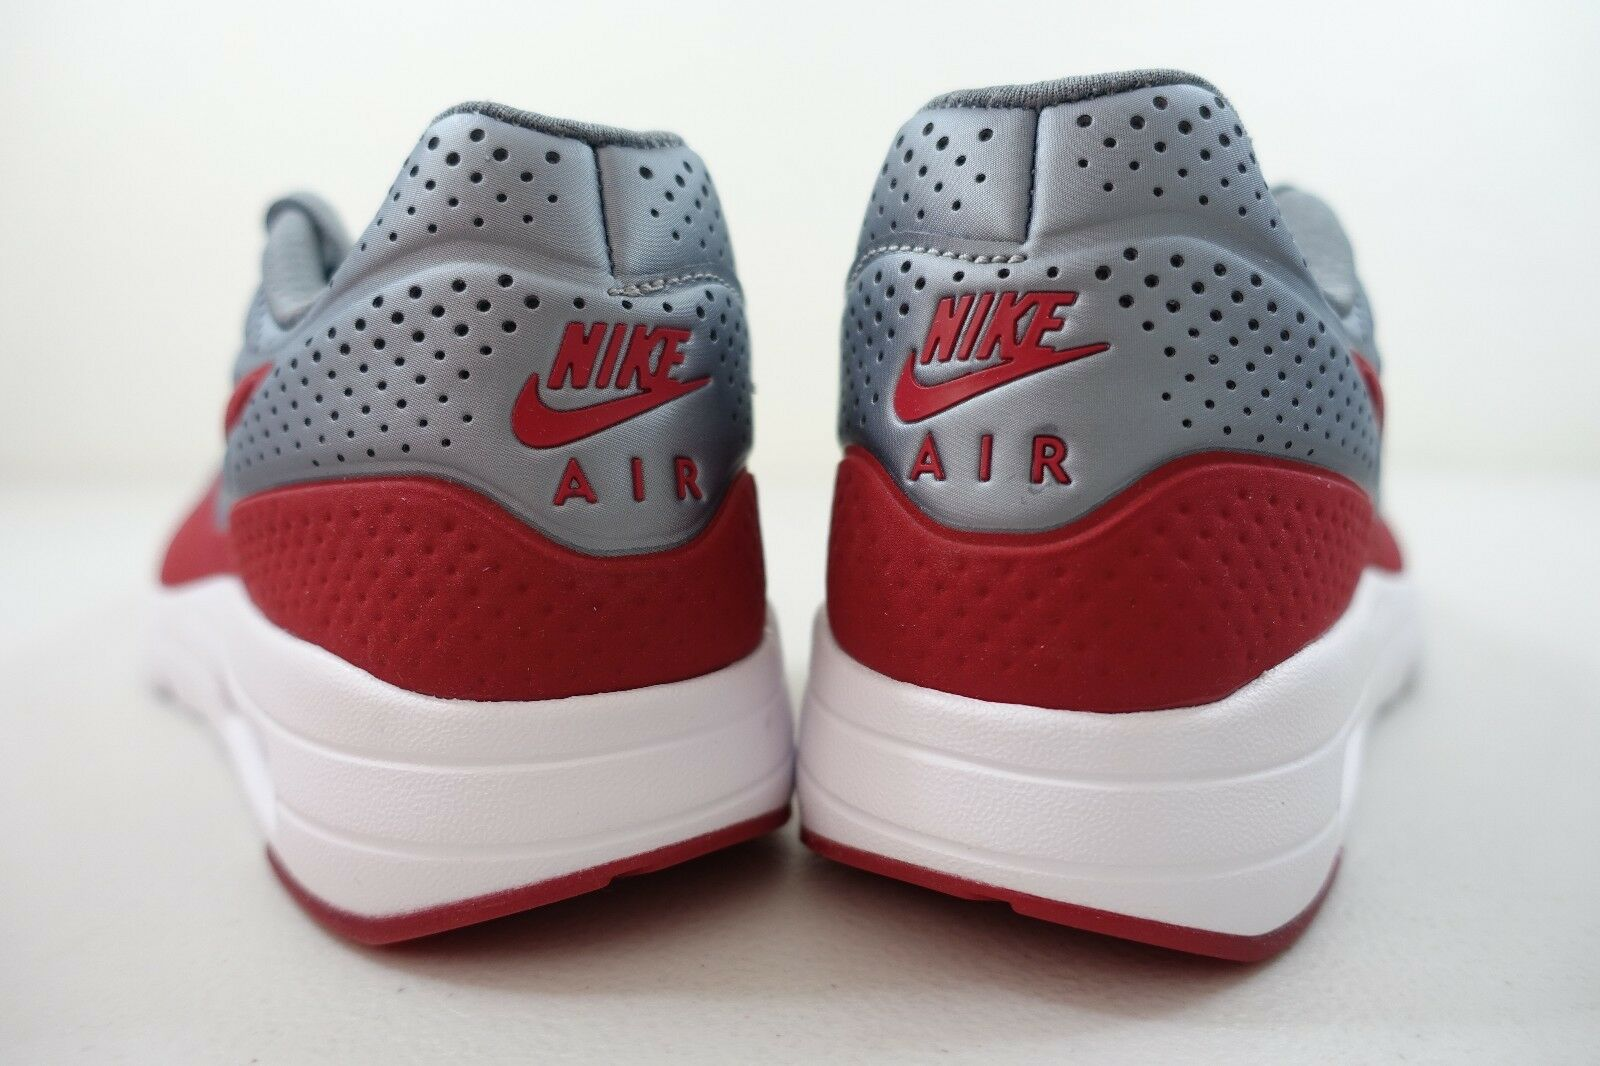 MEN'S NIKE AIR MAX 1 ULTRA ULTRA ULTRA MOIRE SHOES SIZE 7 grey red white 705297 006 13b32b